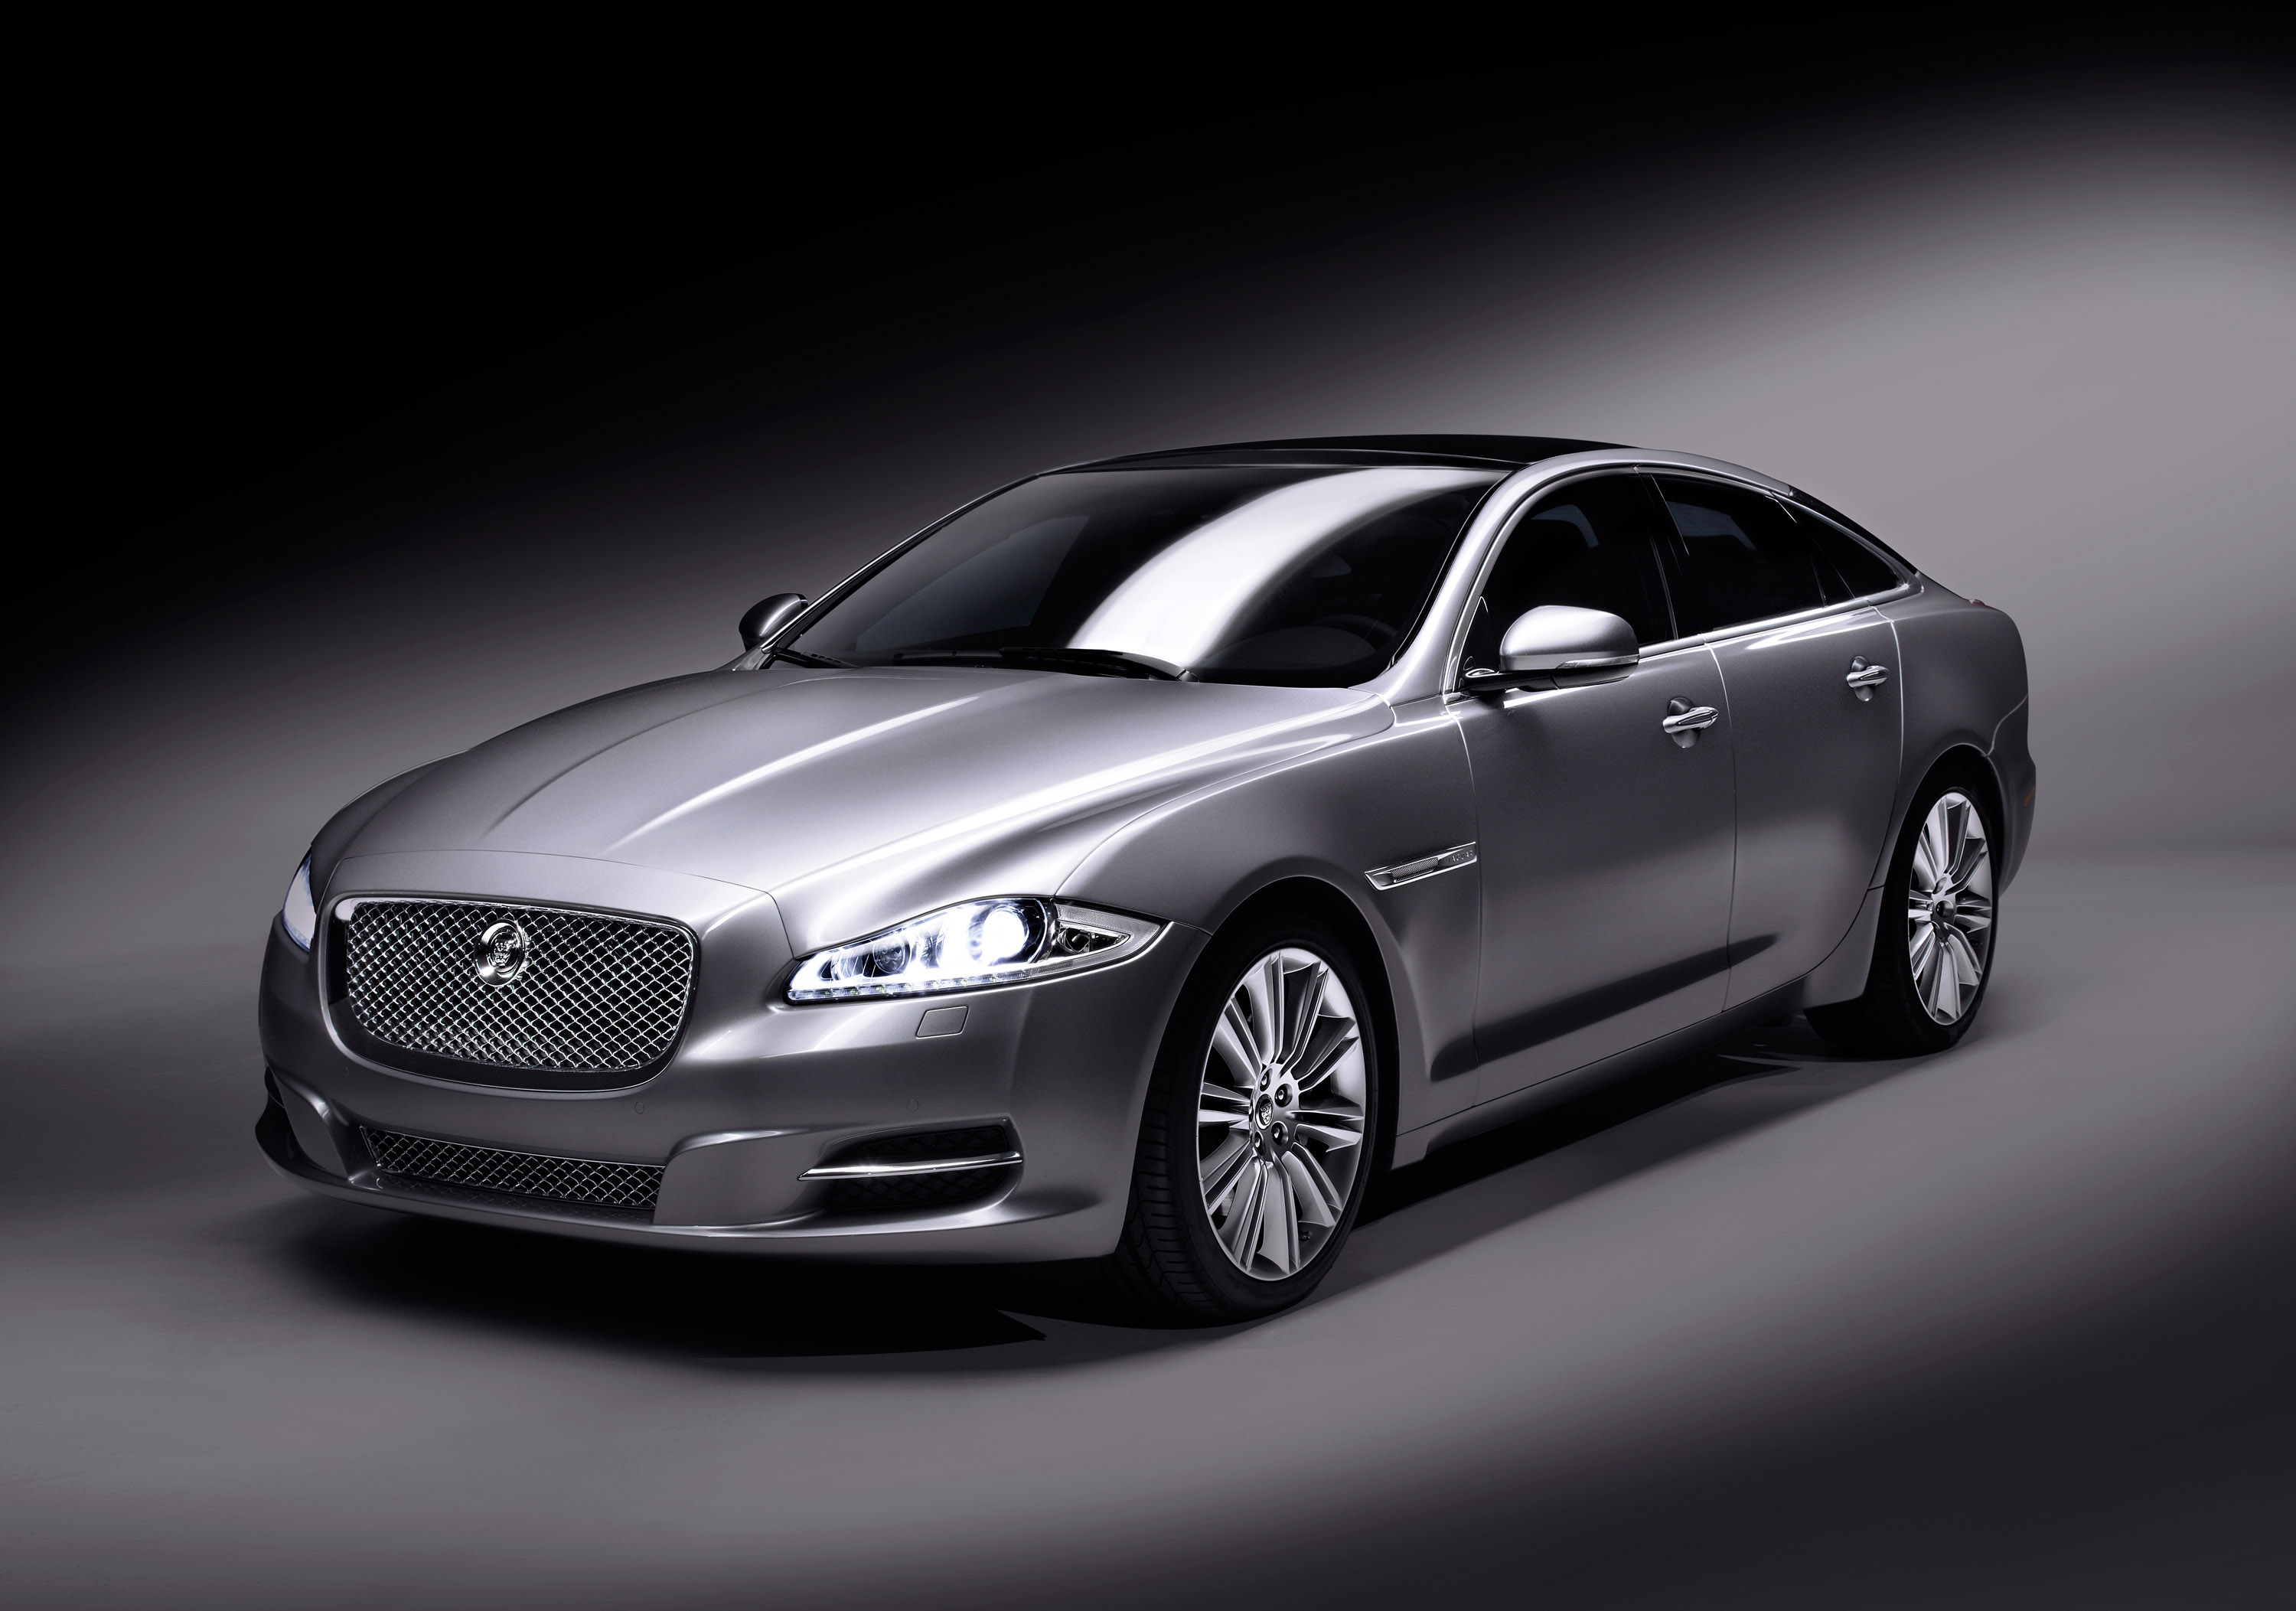 the all new jaguar xj will public debut at this year s salon priv. Black Bedroom Furniture Sets. Home Design Ideas